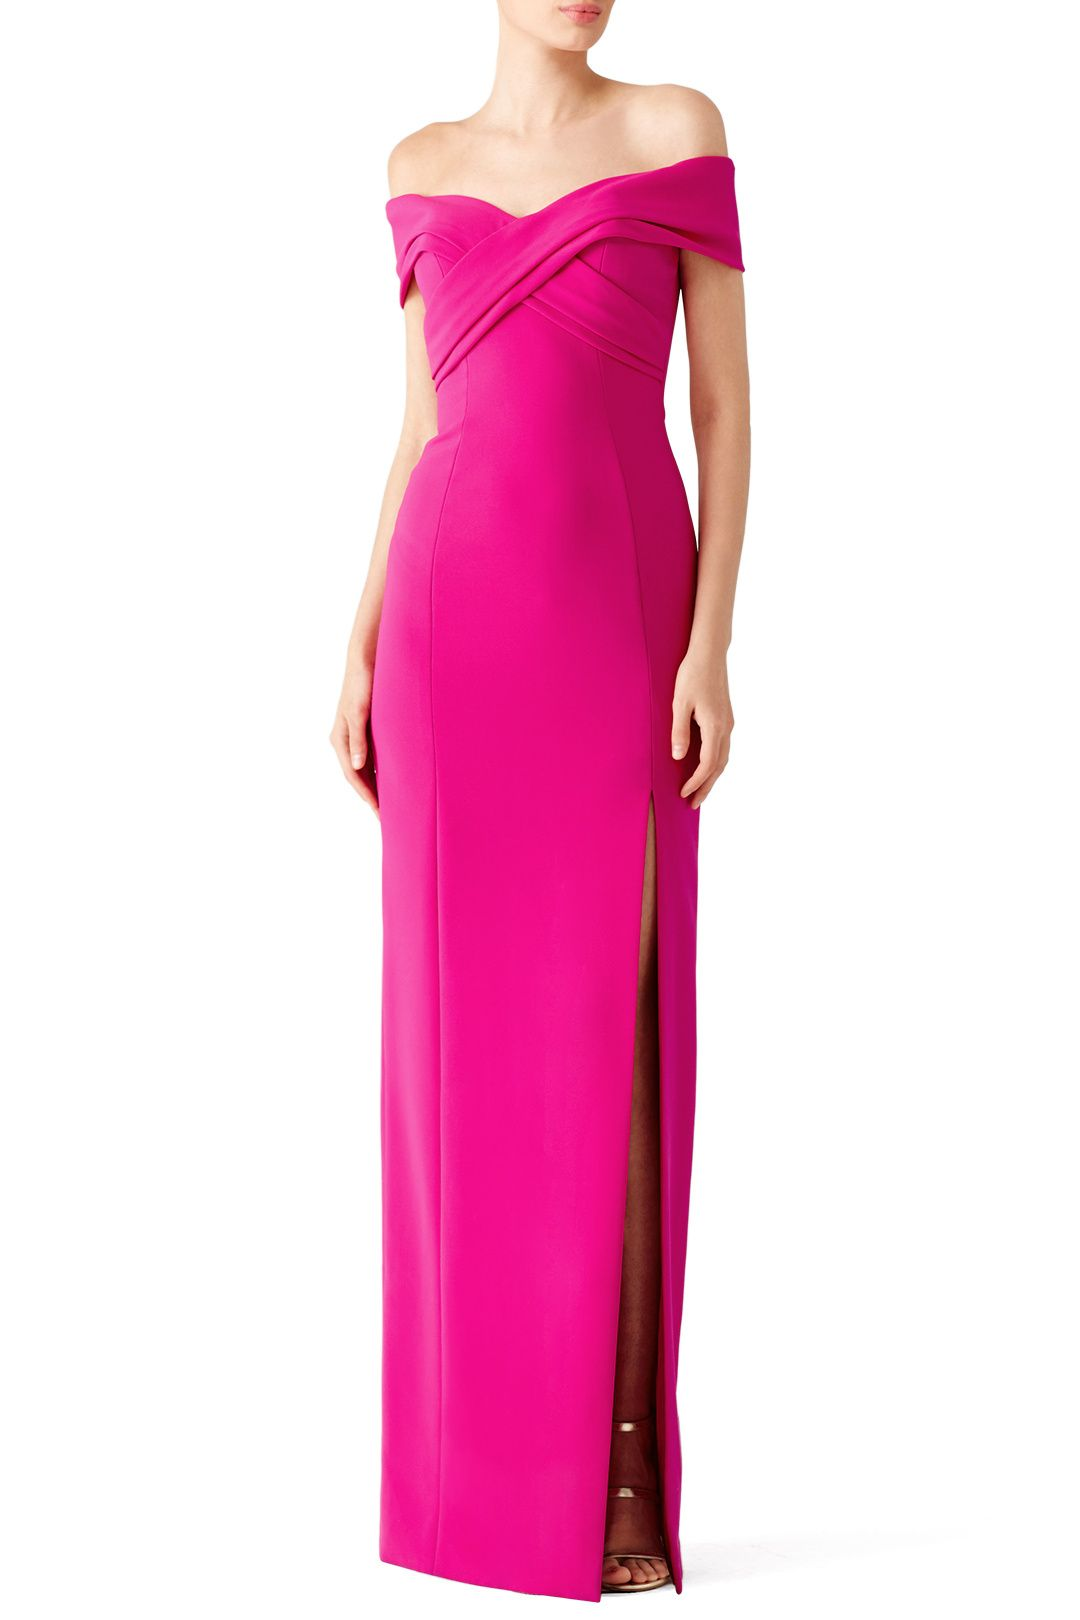 Rent Fuchsia Off Shoulder Gown By Theia For 120 Only At Rent The Runway Maxi Dress Cocktail Off Shoulder Gown Fuschia Dress [ 1620 x 1080 Pixel ]